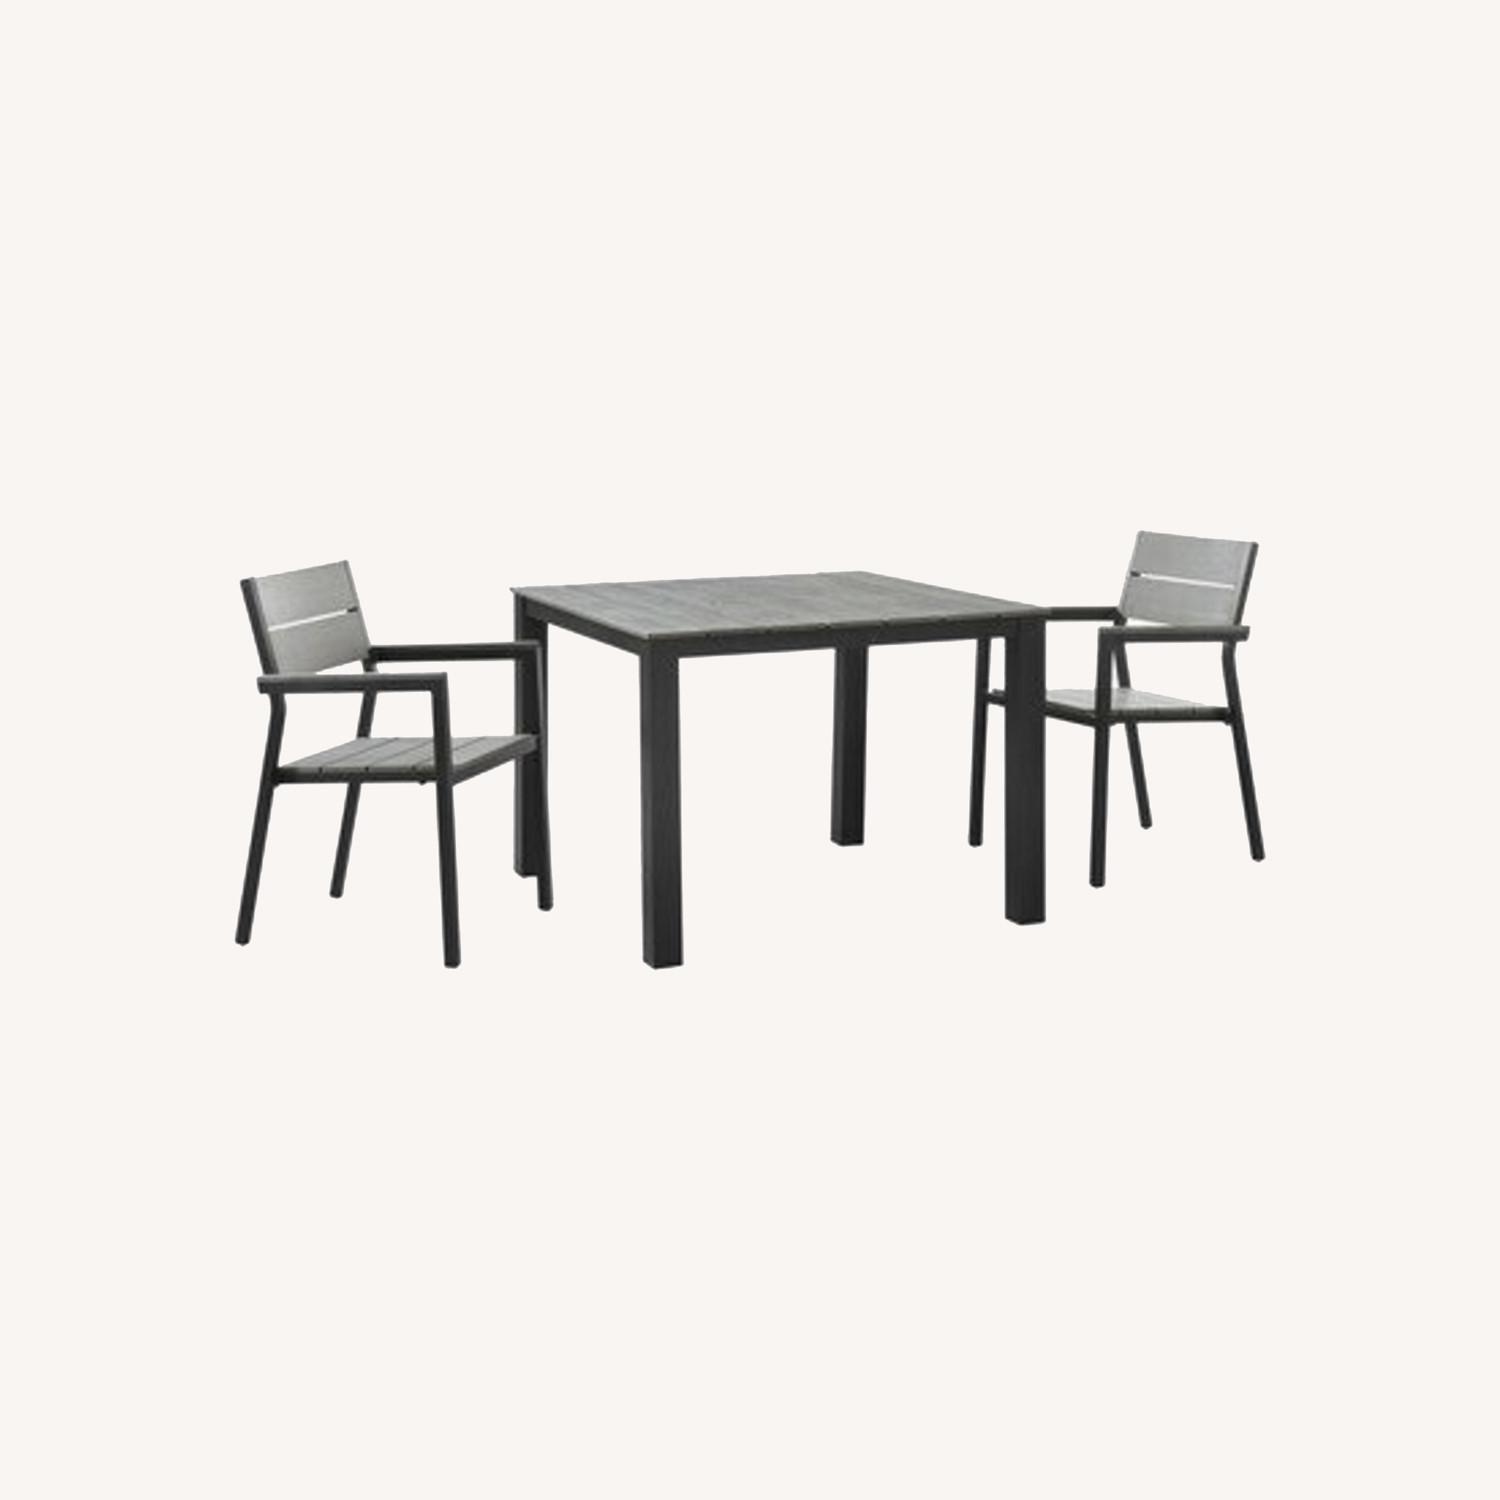 Modern 3-Piece Outdoor Dining Set In Brown & Gray - image-5